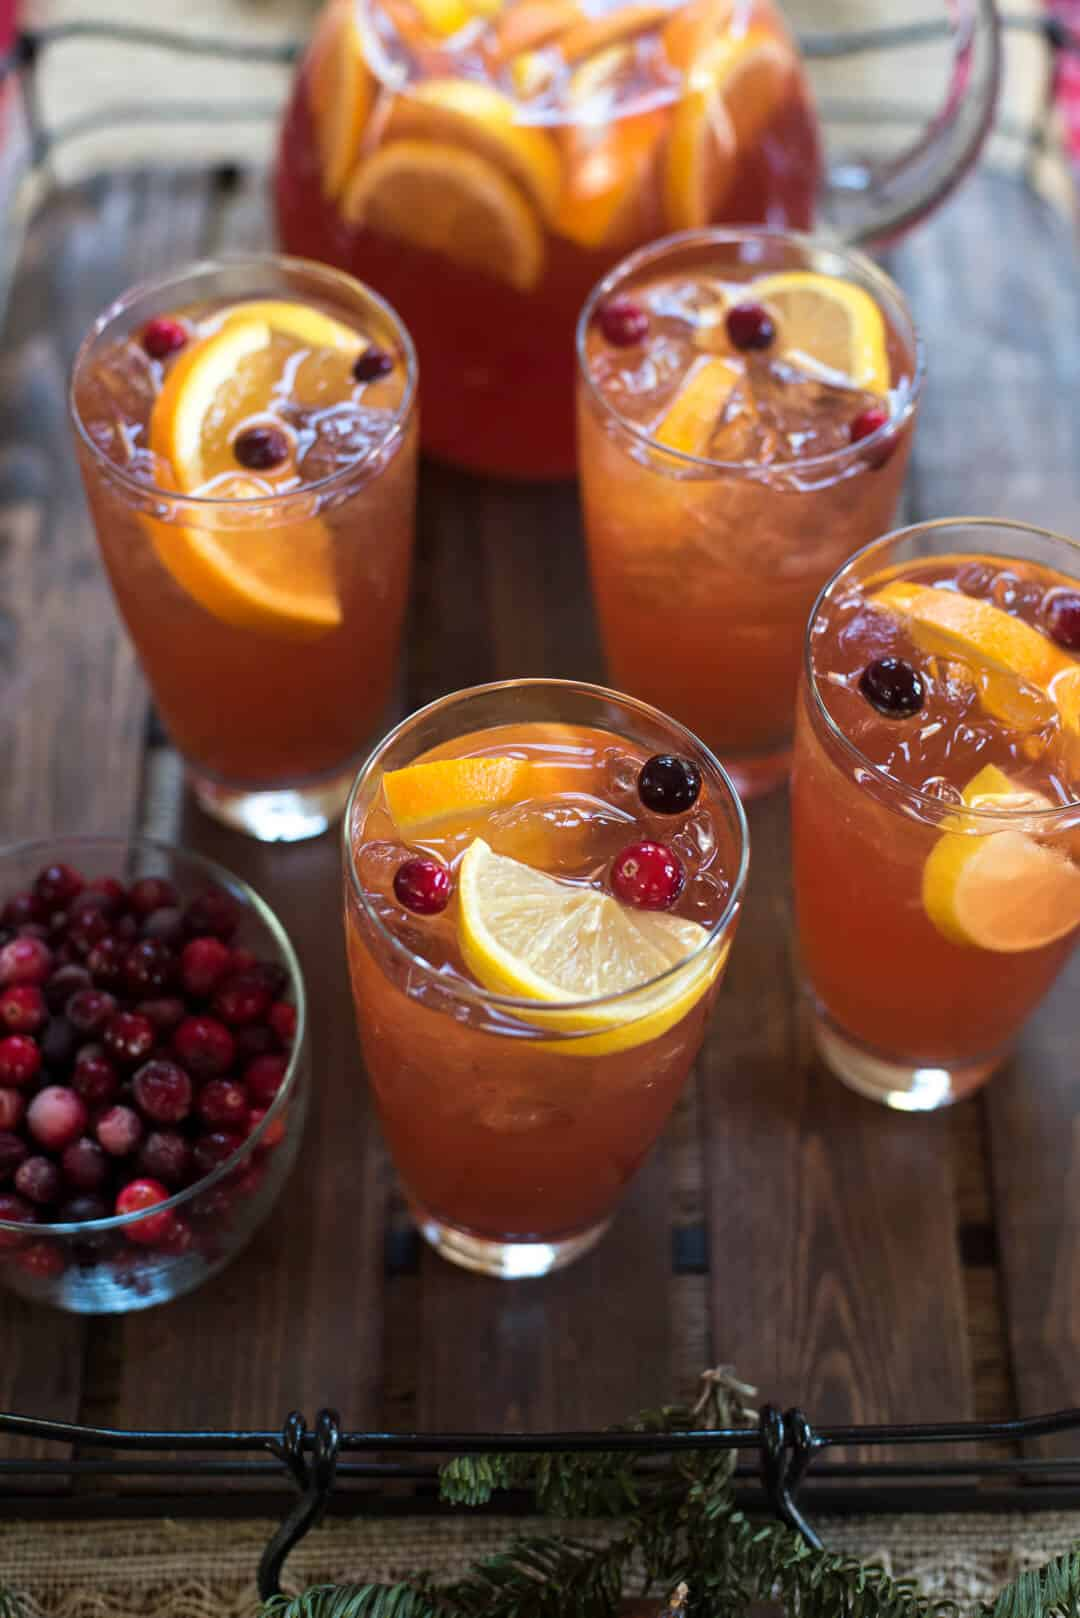 A fast, easy cold brew method creates this vibrant winter-inspired beverage. Brighten up your next winter meal with Cold Brew Cranberry Citrus Iced Tea.